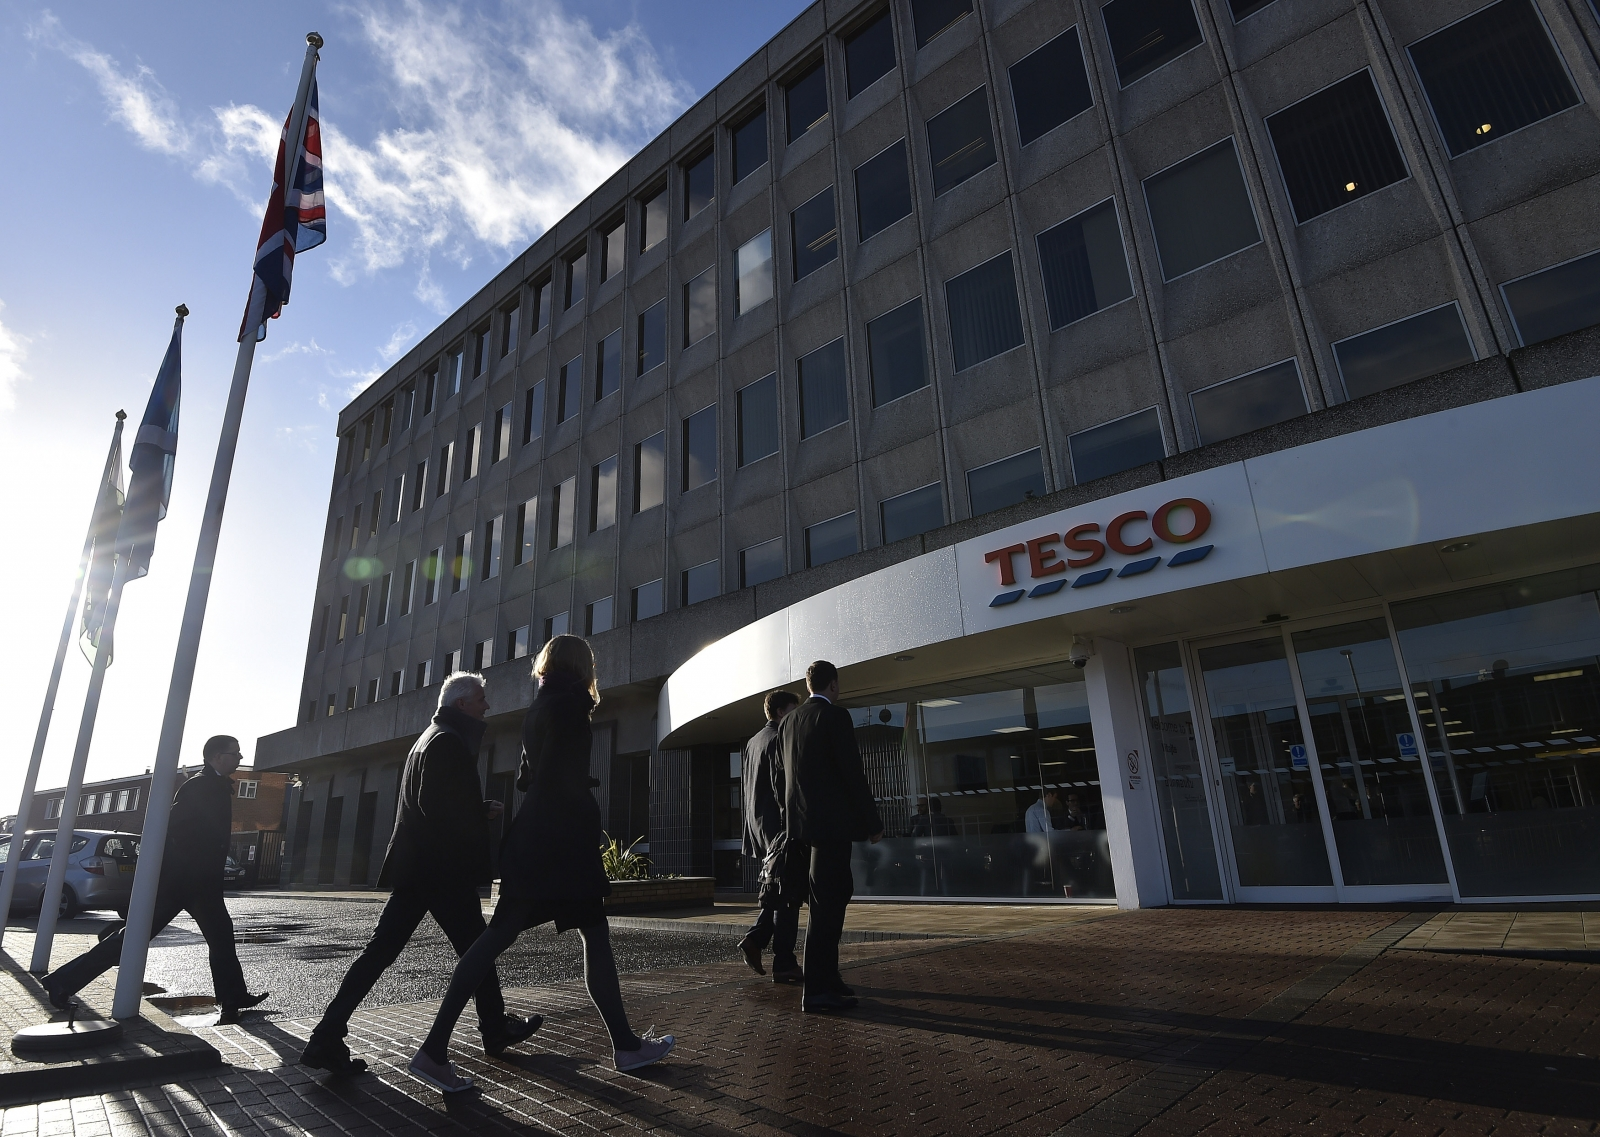 Tesco sells Dobbies for £217m to a consortium led by Midlothian Capital Partners and Hattington Capital